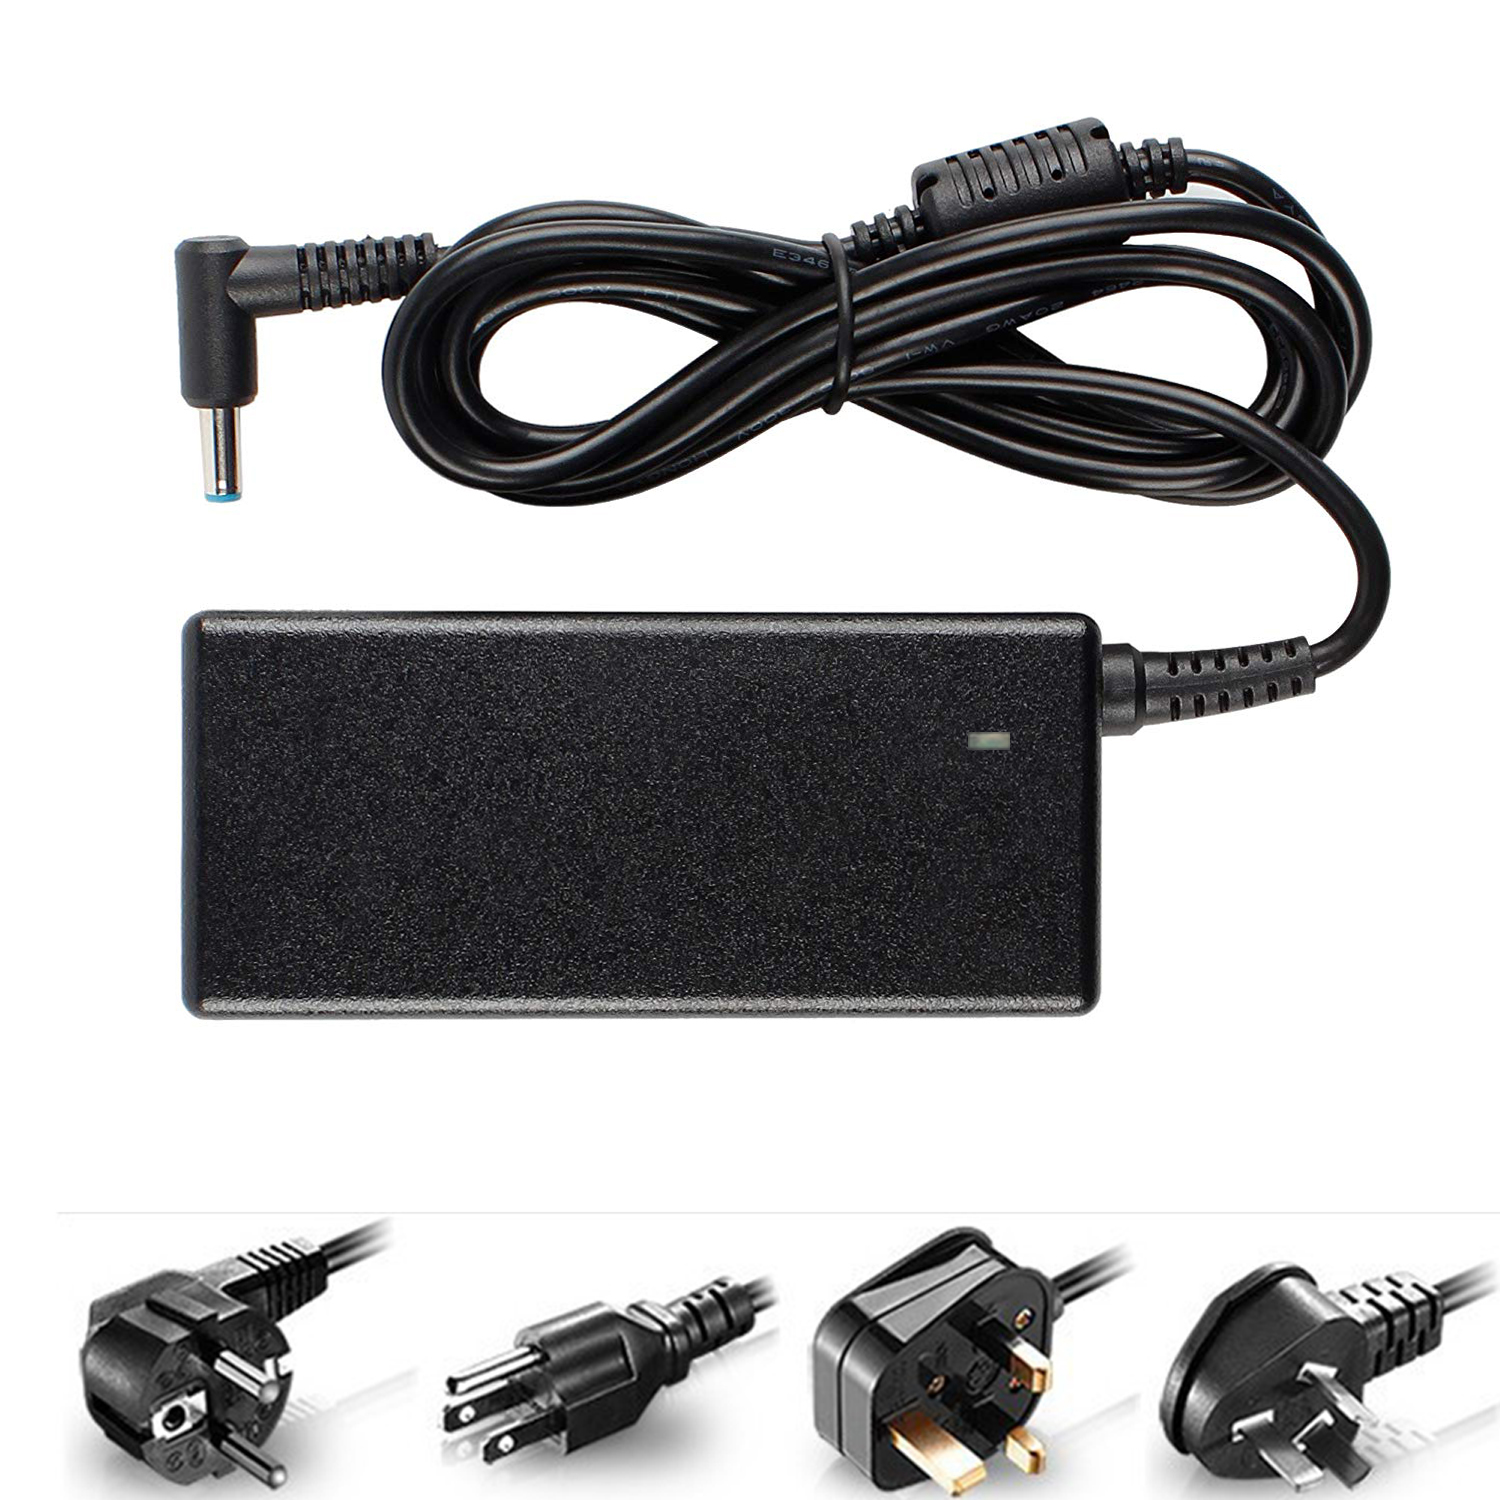 Power supply AC Charger Adapter 12V 3.6A for Microsoft Surface pro 2 Tablet Aga